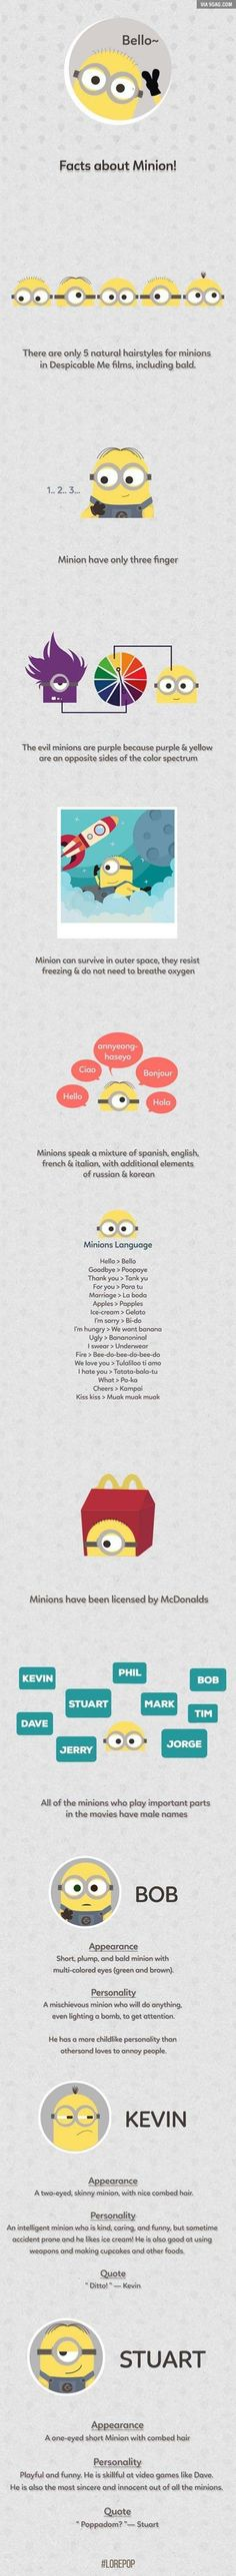 Brush up on your Minion knowledge this weekend with this awesome infographic!. #minions #infographic #knowledge